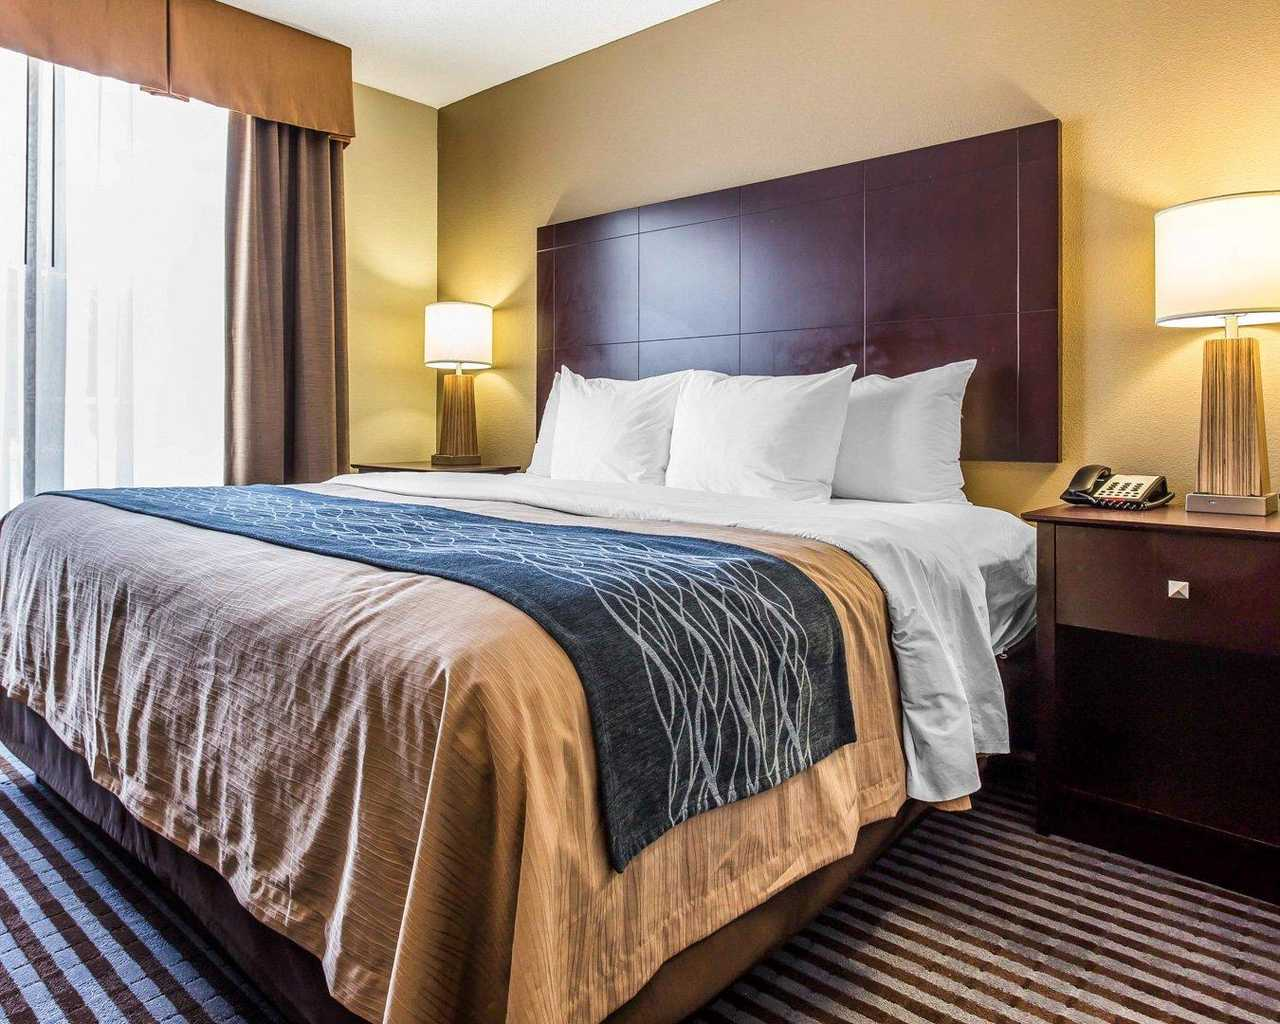 Comfort Inn & Suites Ballpark Area - King Bed Room-3